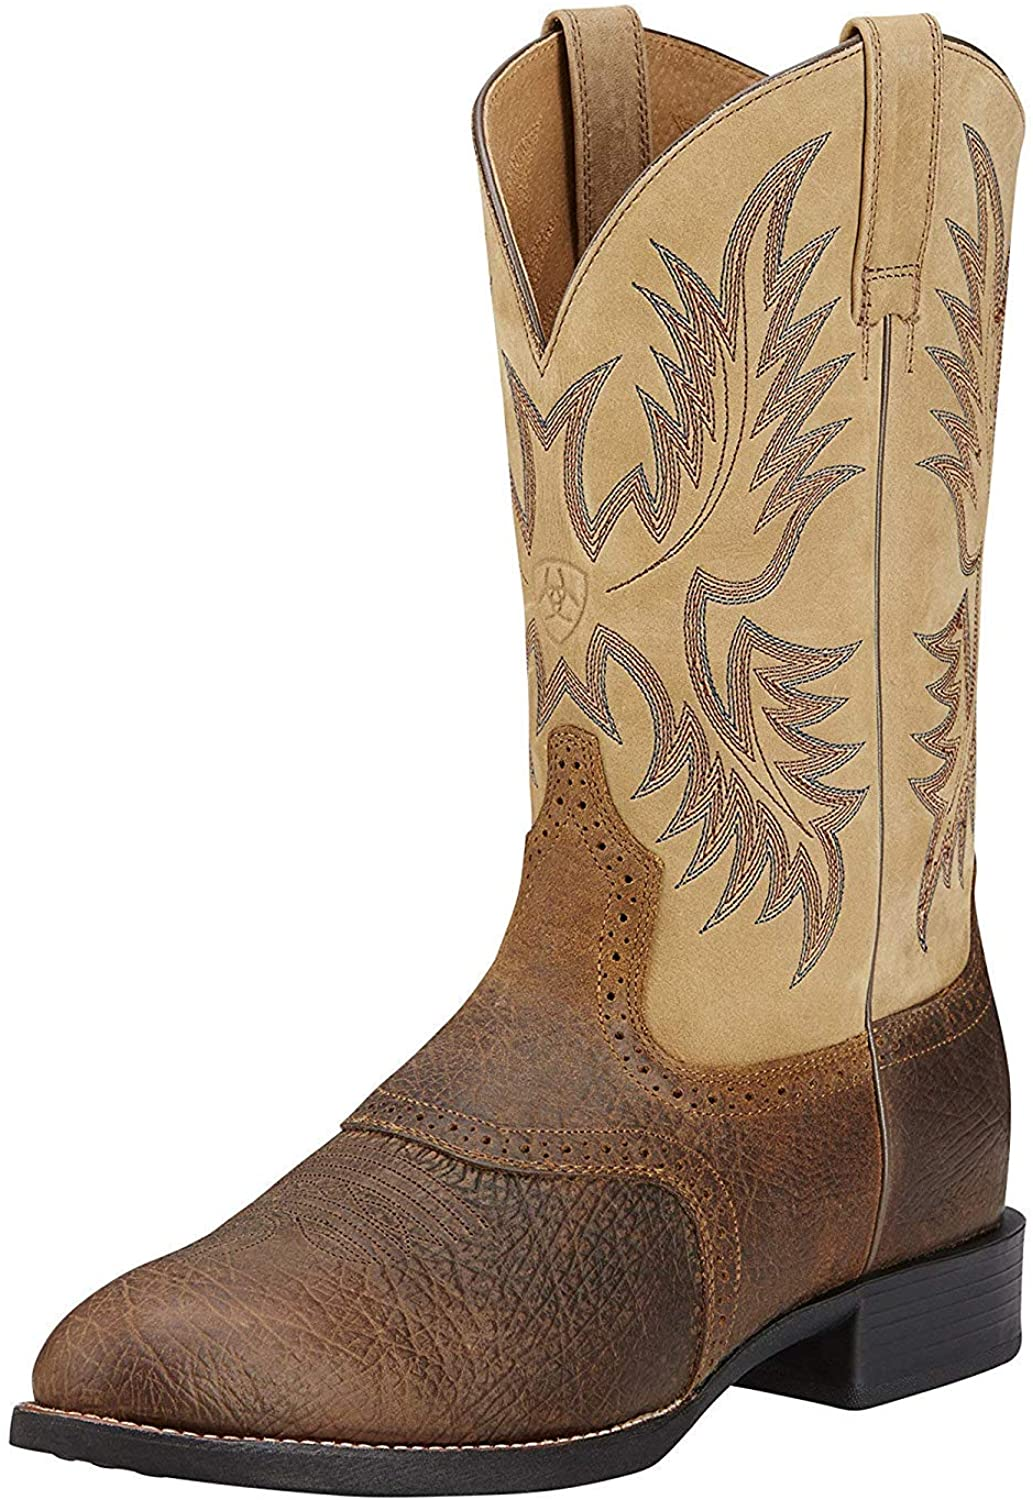 Max 70% OFF ARIAT All items in the store Men's Western Boot